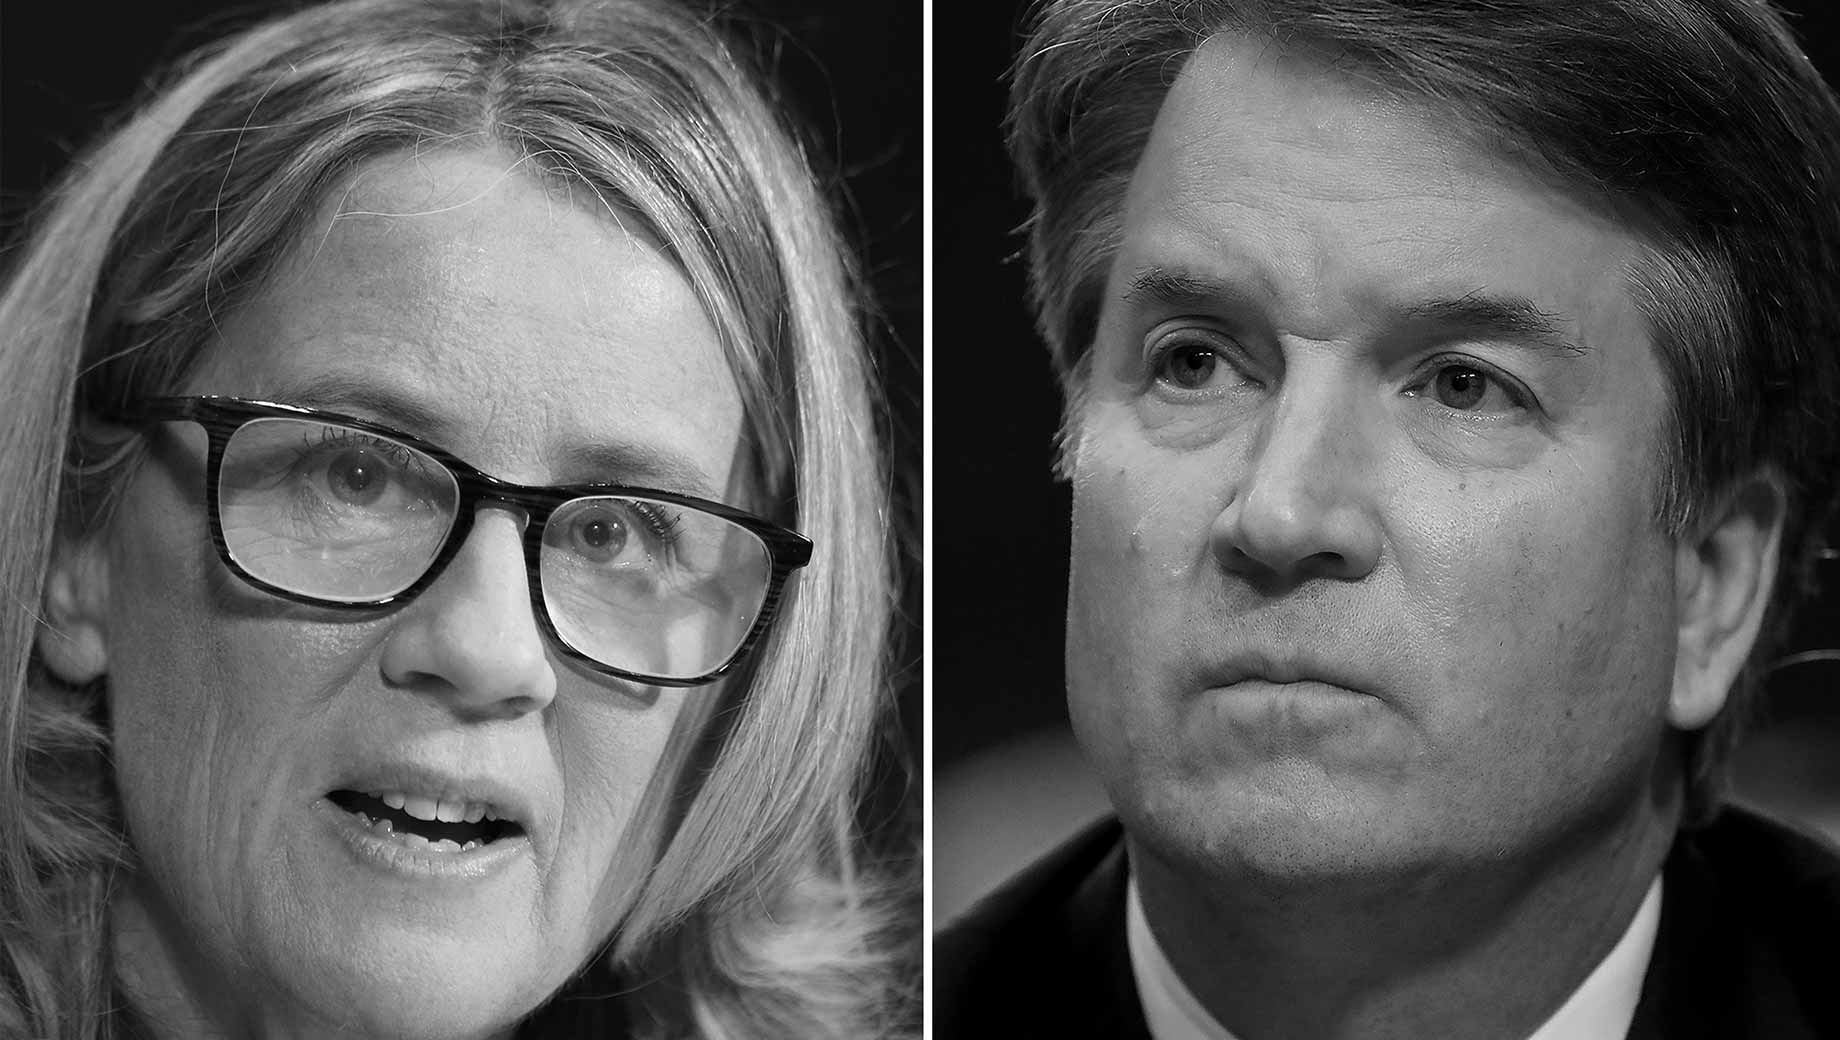 Americans Still Closely Divided on Kavanaugh Confirmation